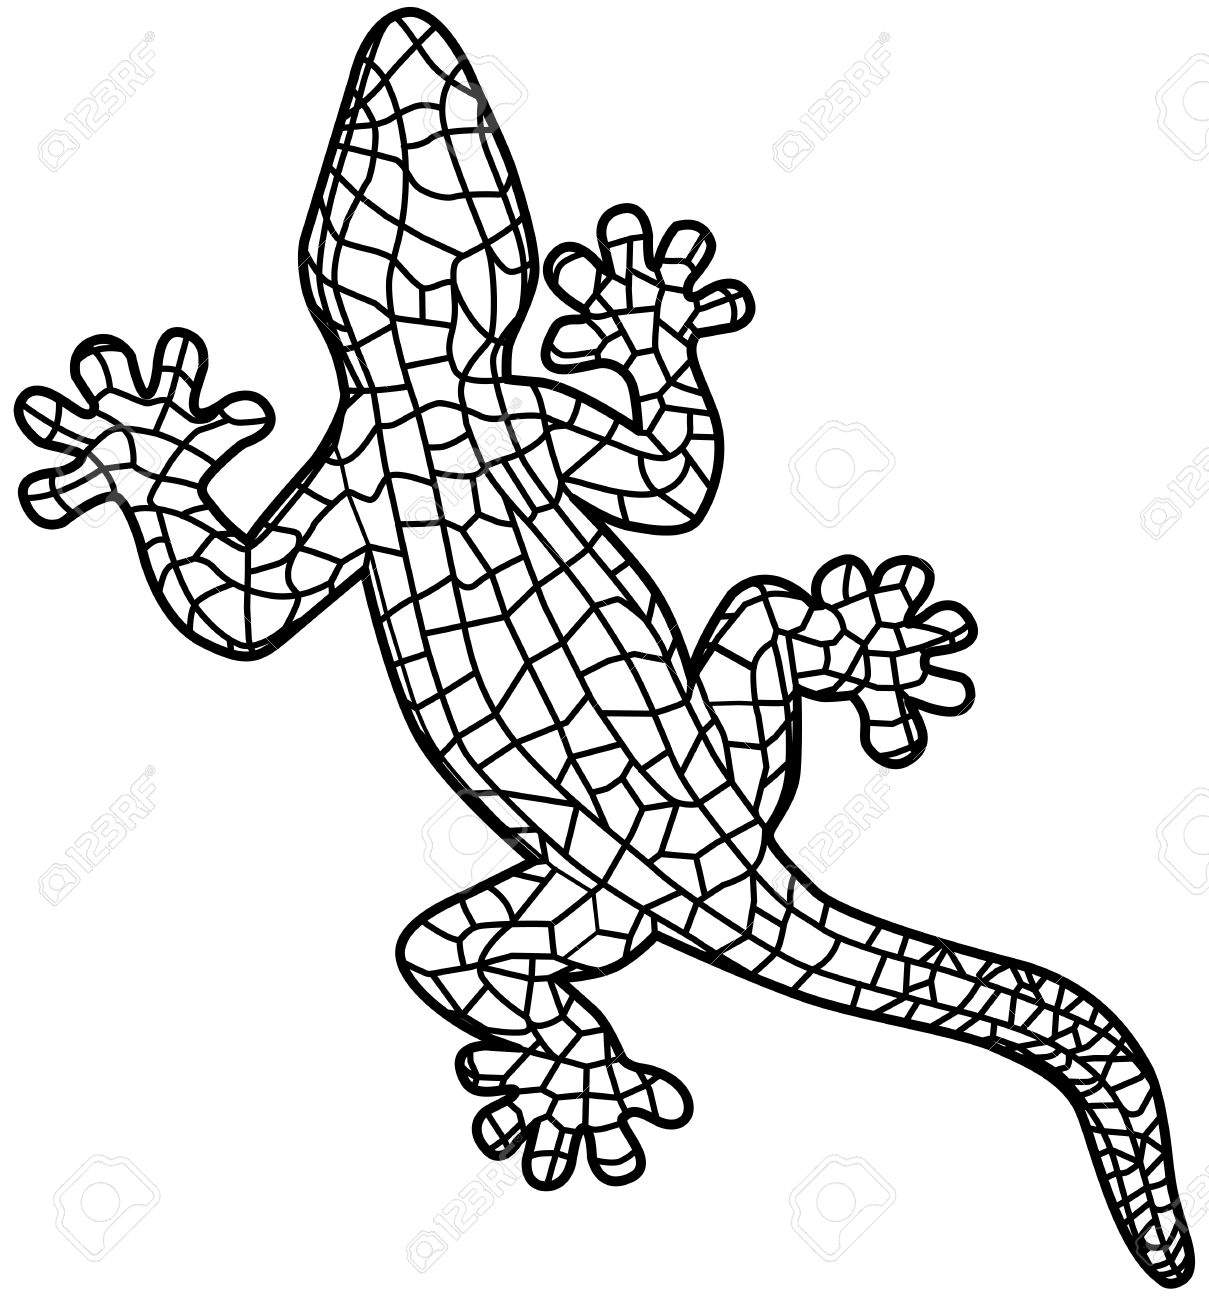 Gecko Drawing Template at GetDrawings.com   Free for personal use ...